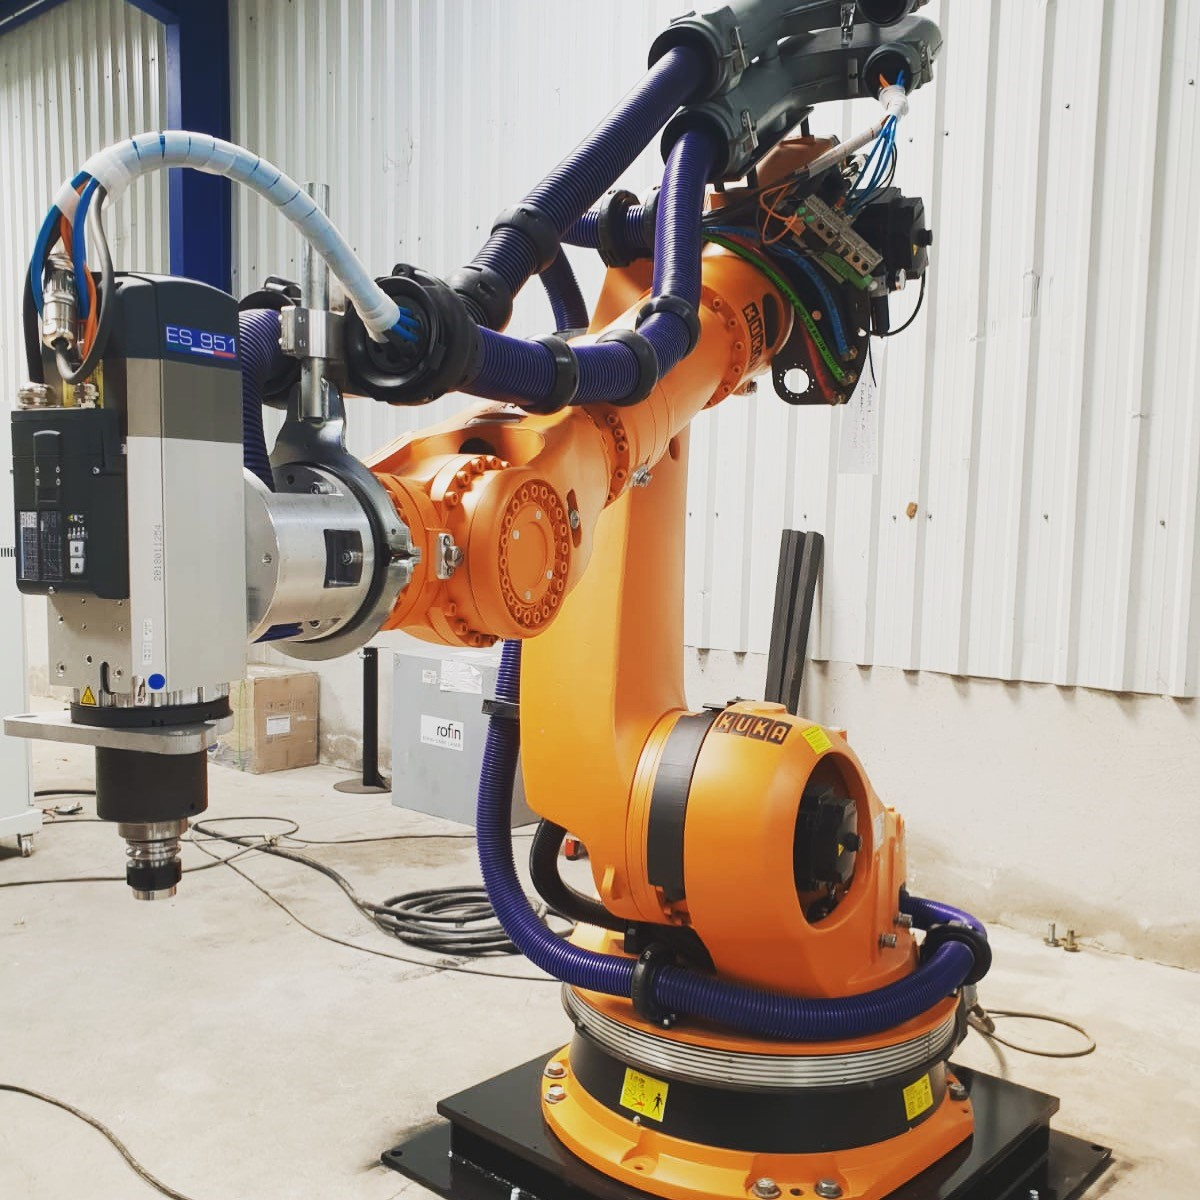 THE WOOD INDUSTRY BECOMES AN ARTISTIC INDUSTRY WITH ROBOTIC MILLING SYSTEMS